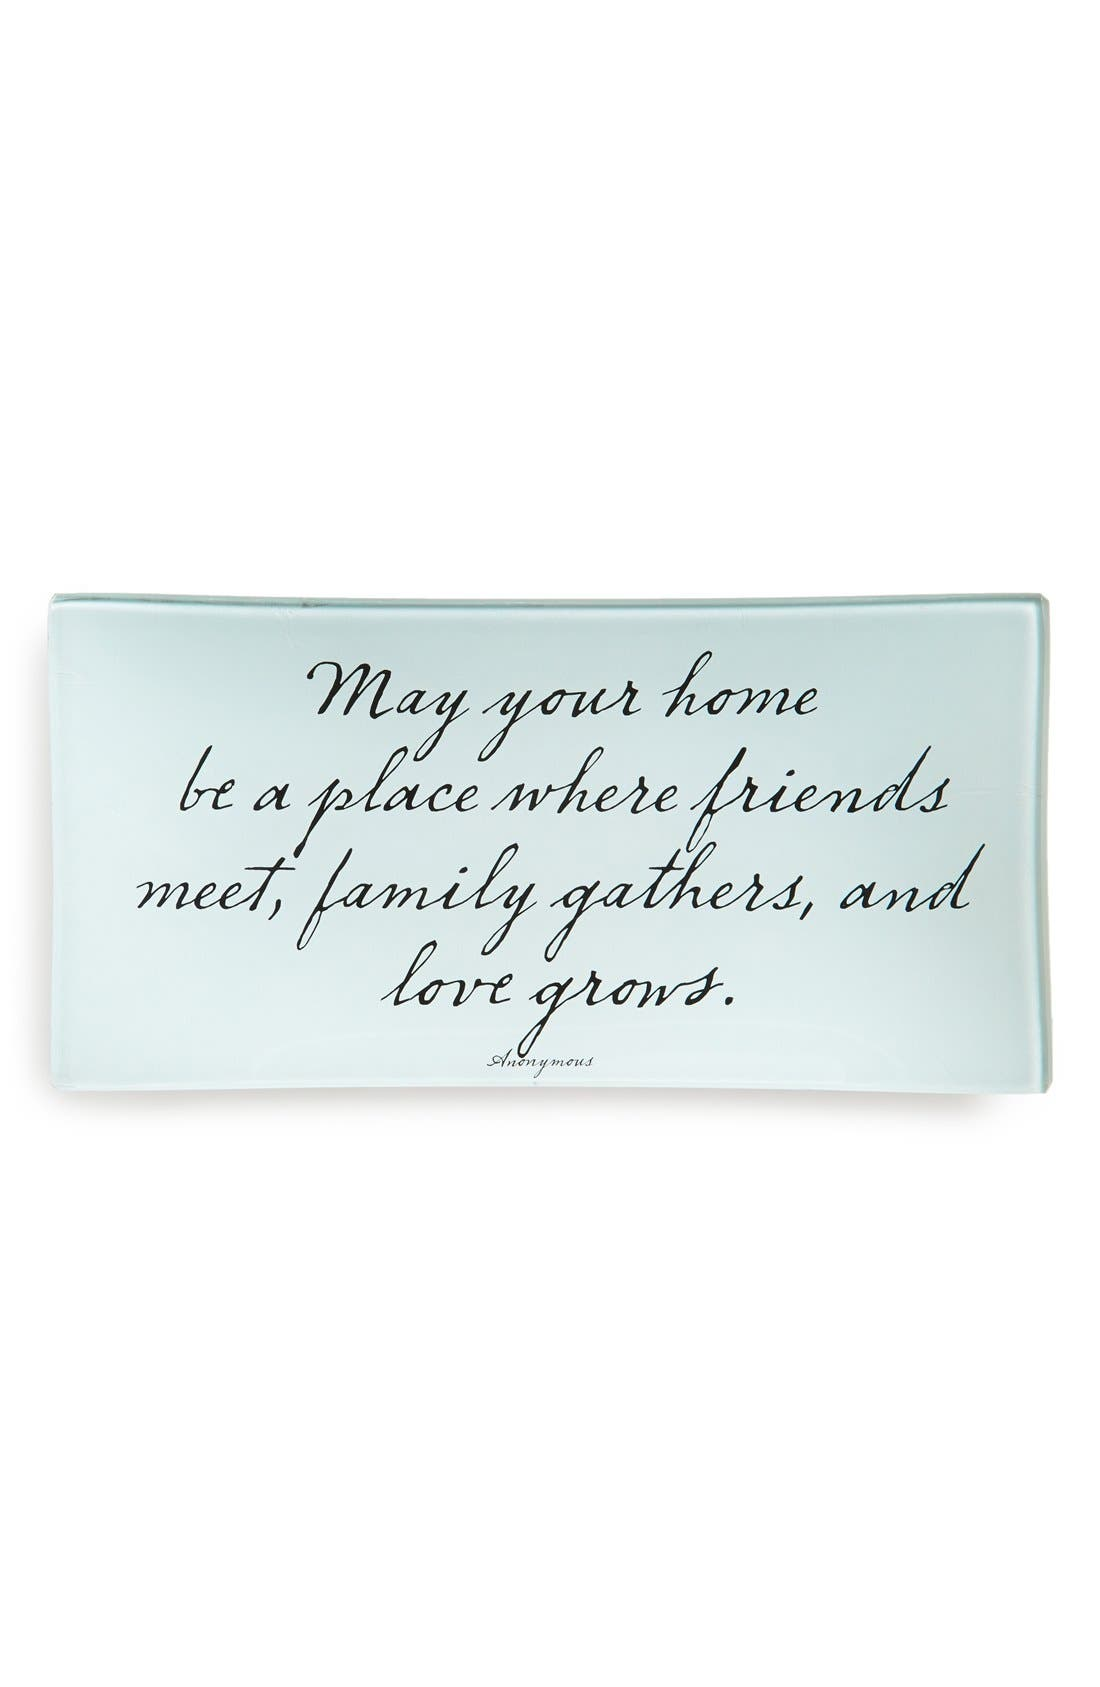 Alternate Image 1 Selected - Ben's Garden 'May Your Home Be a Place' Decorative Glass Tray